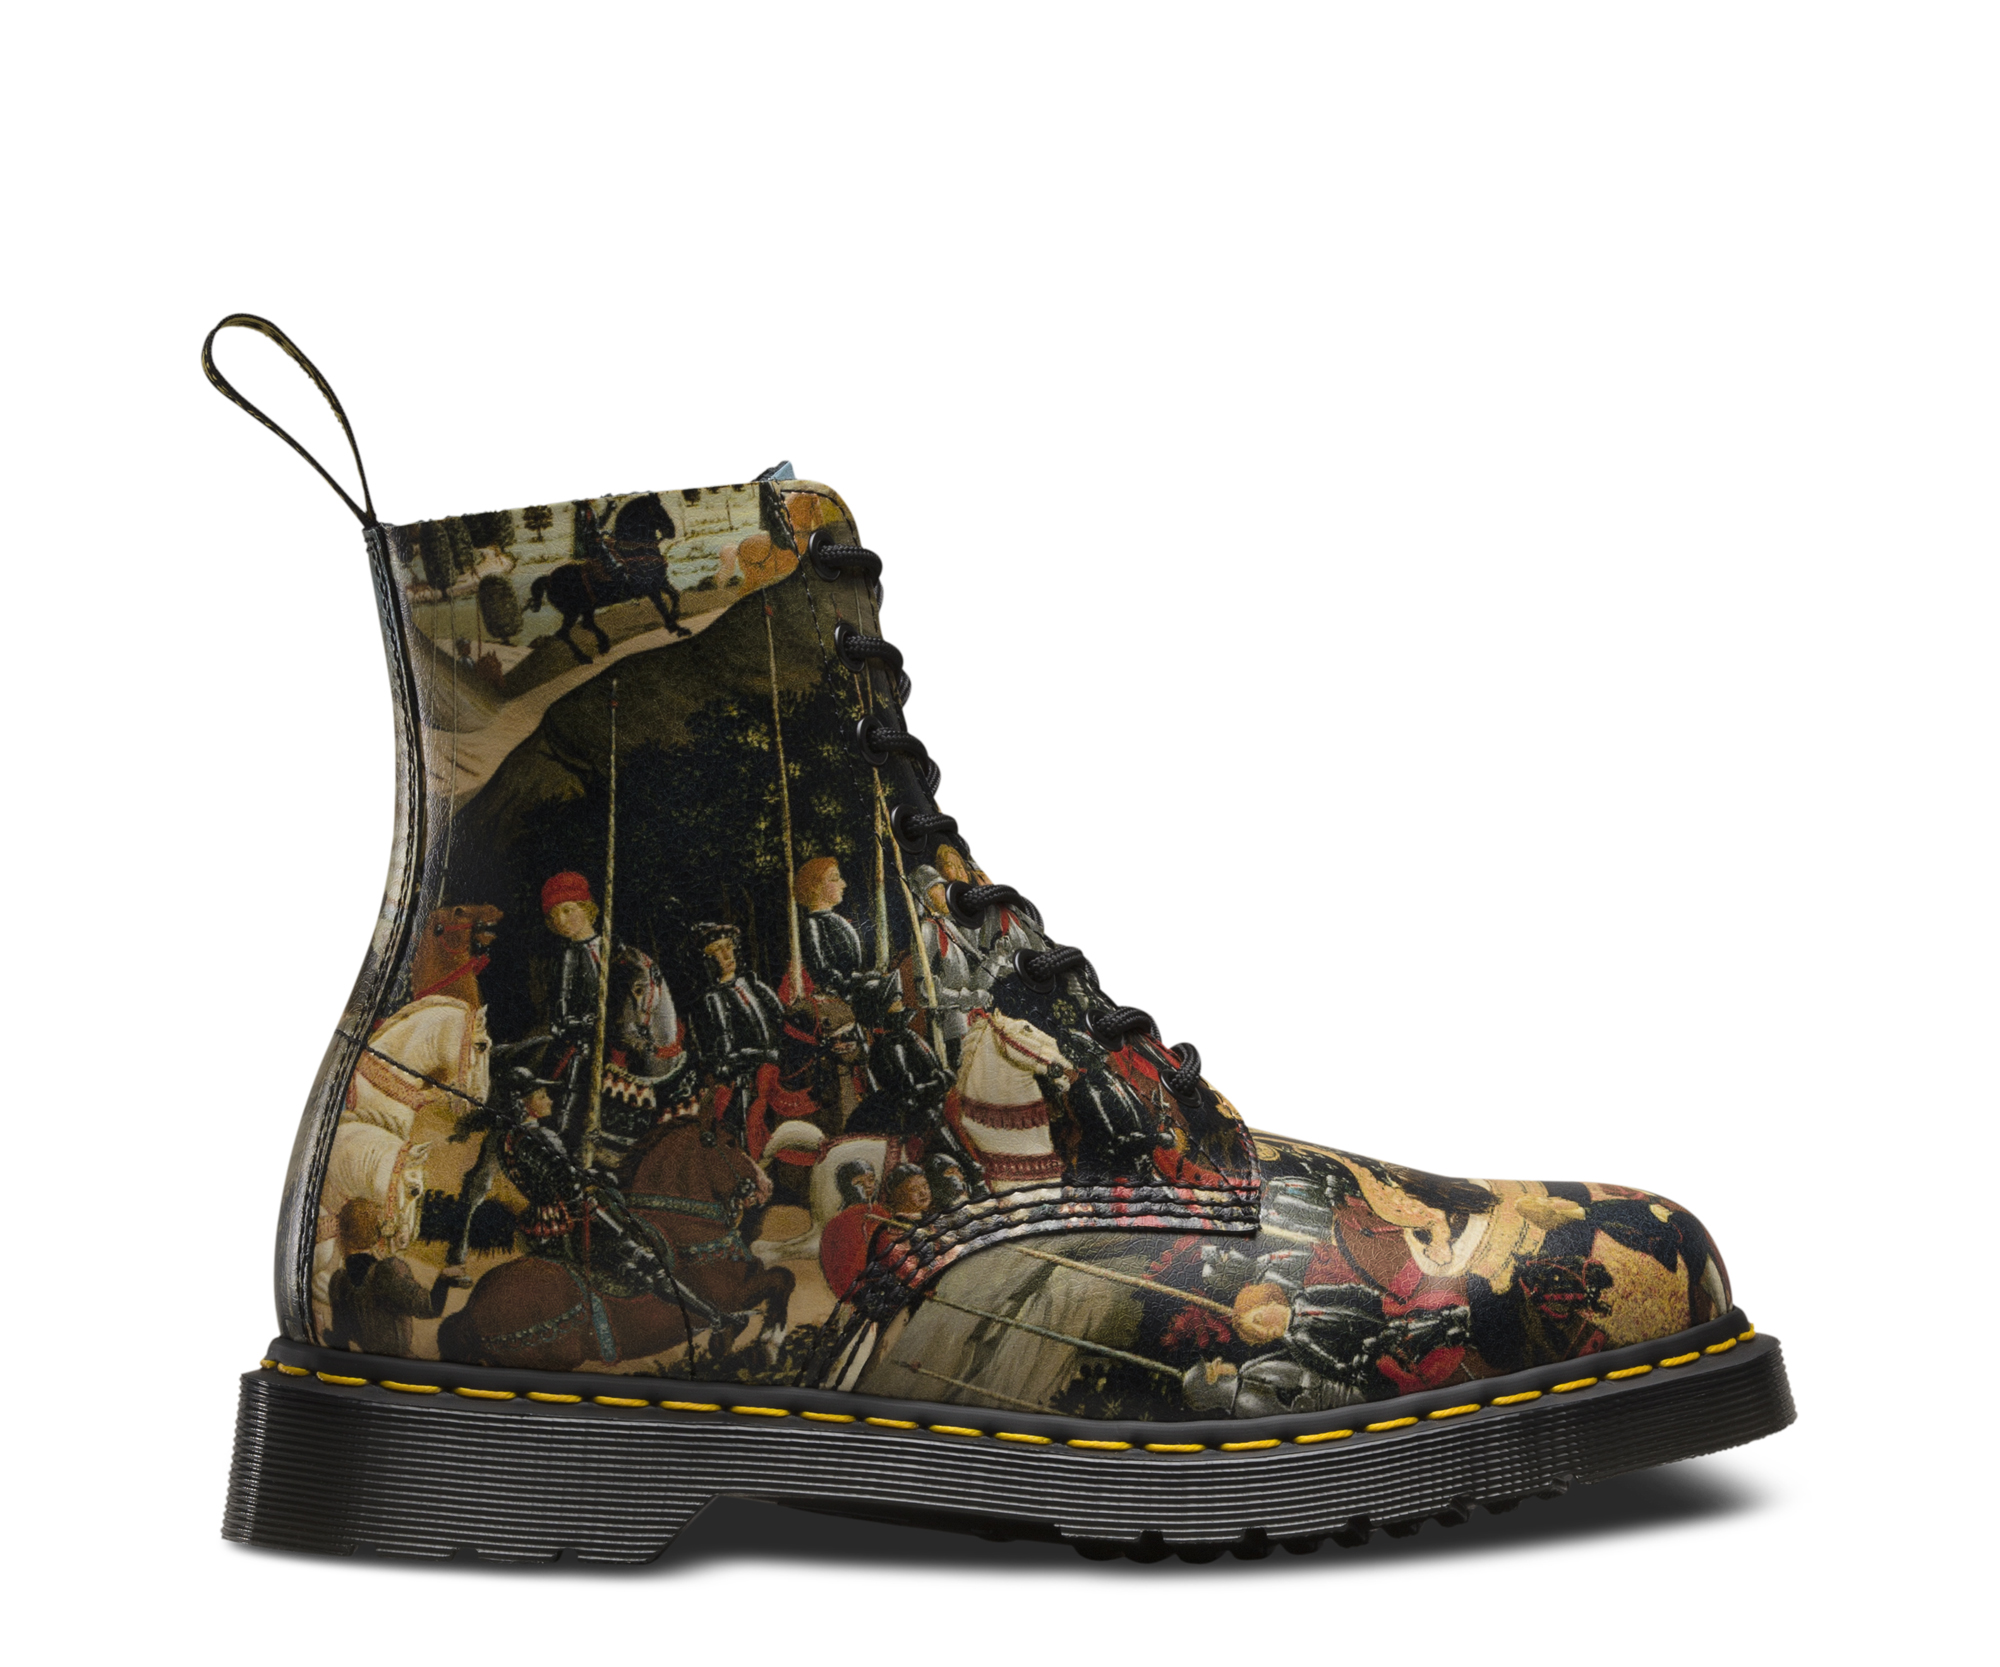 di antonio pascal women 39 s boots shoes official dr martens store uk. Black Bedroom Furniture Sets. Home Design Ideas